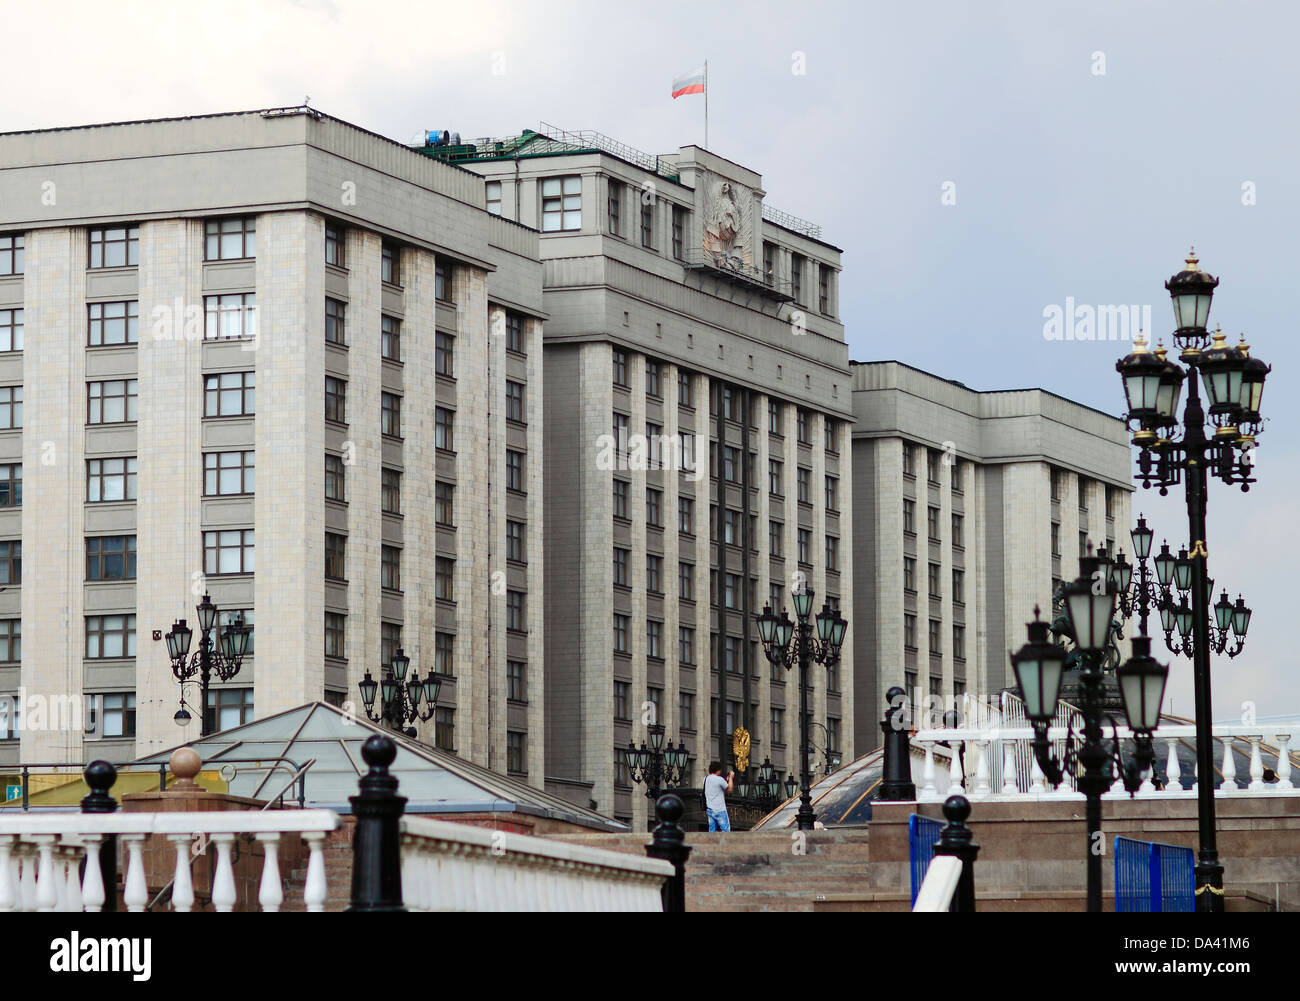 the state Duma of the Russian Federation - Stock Image